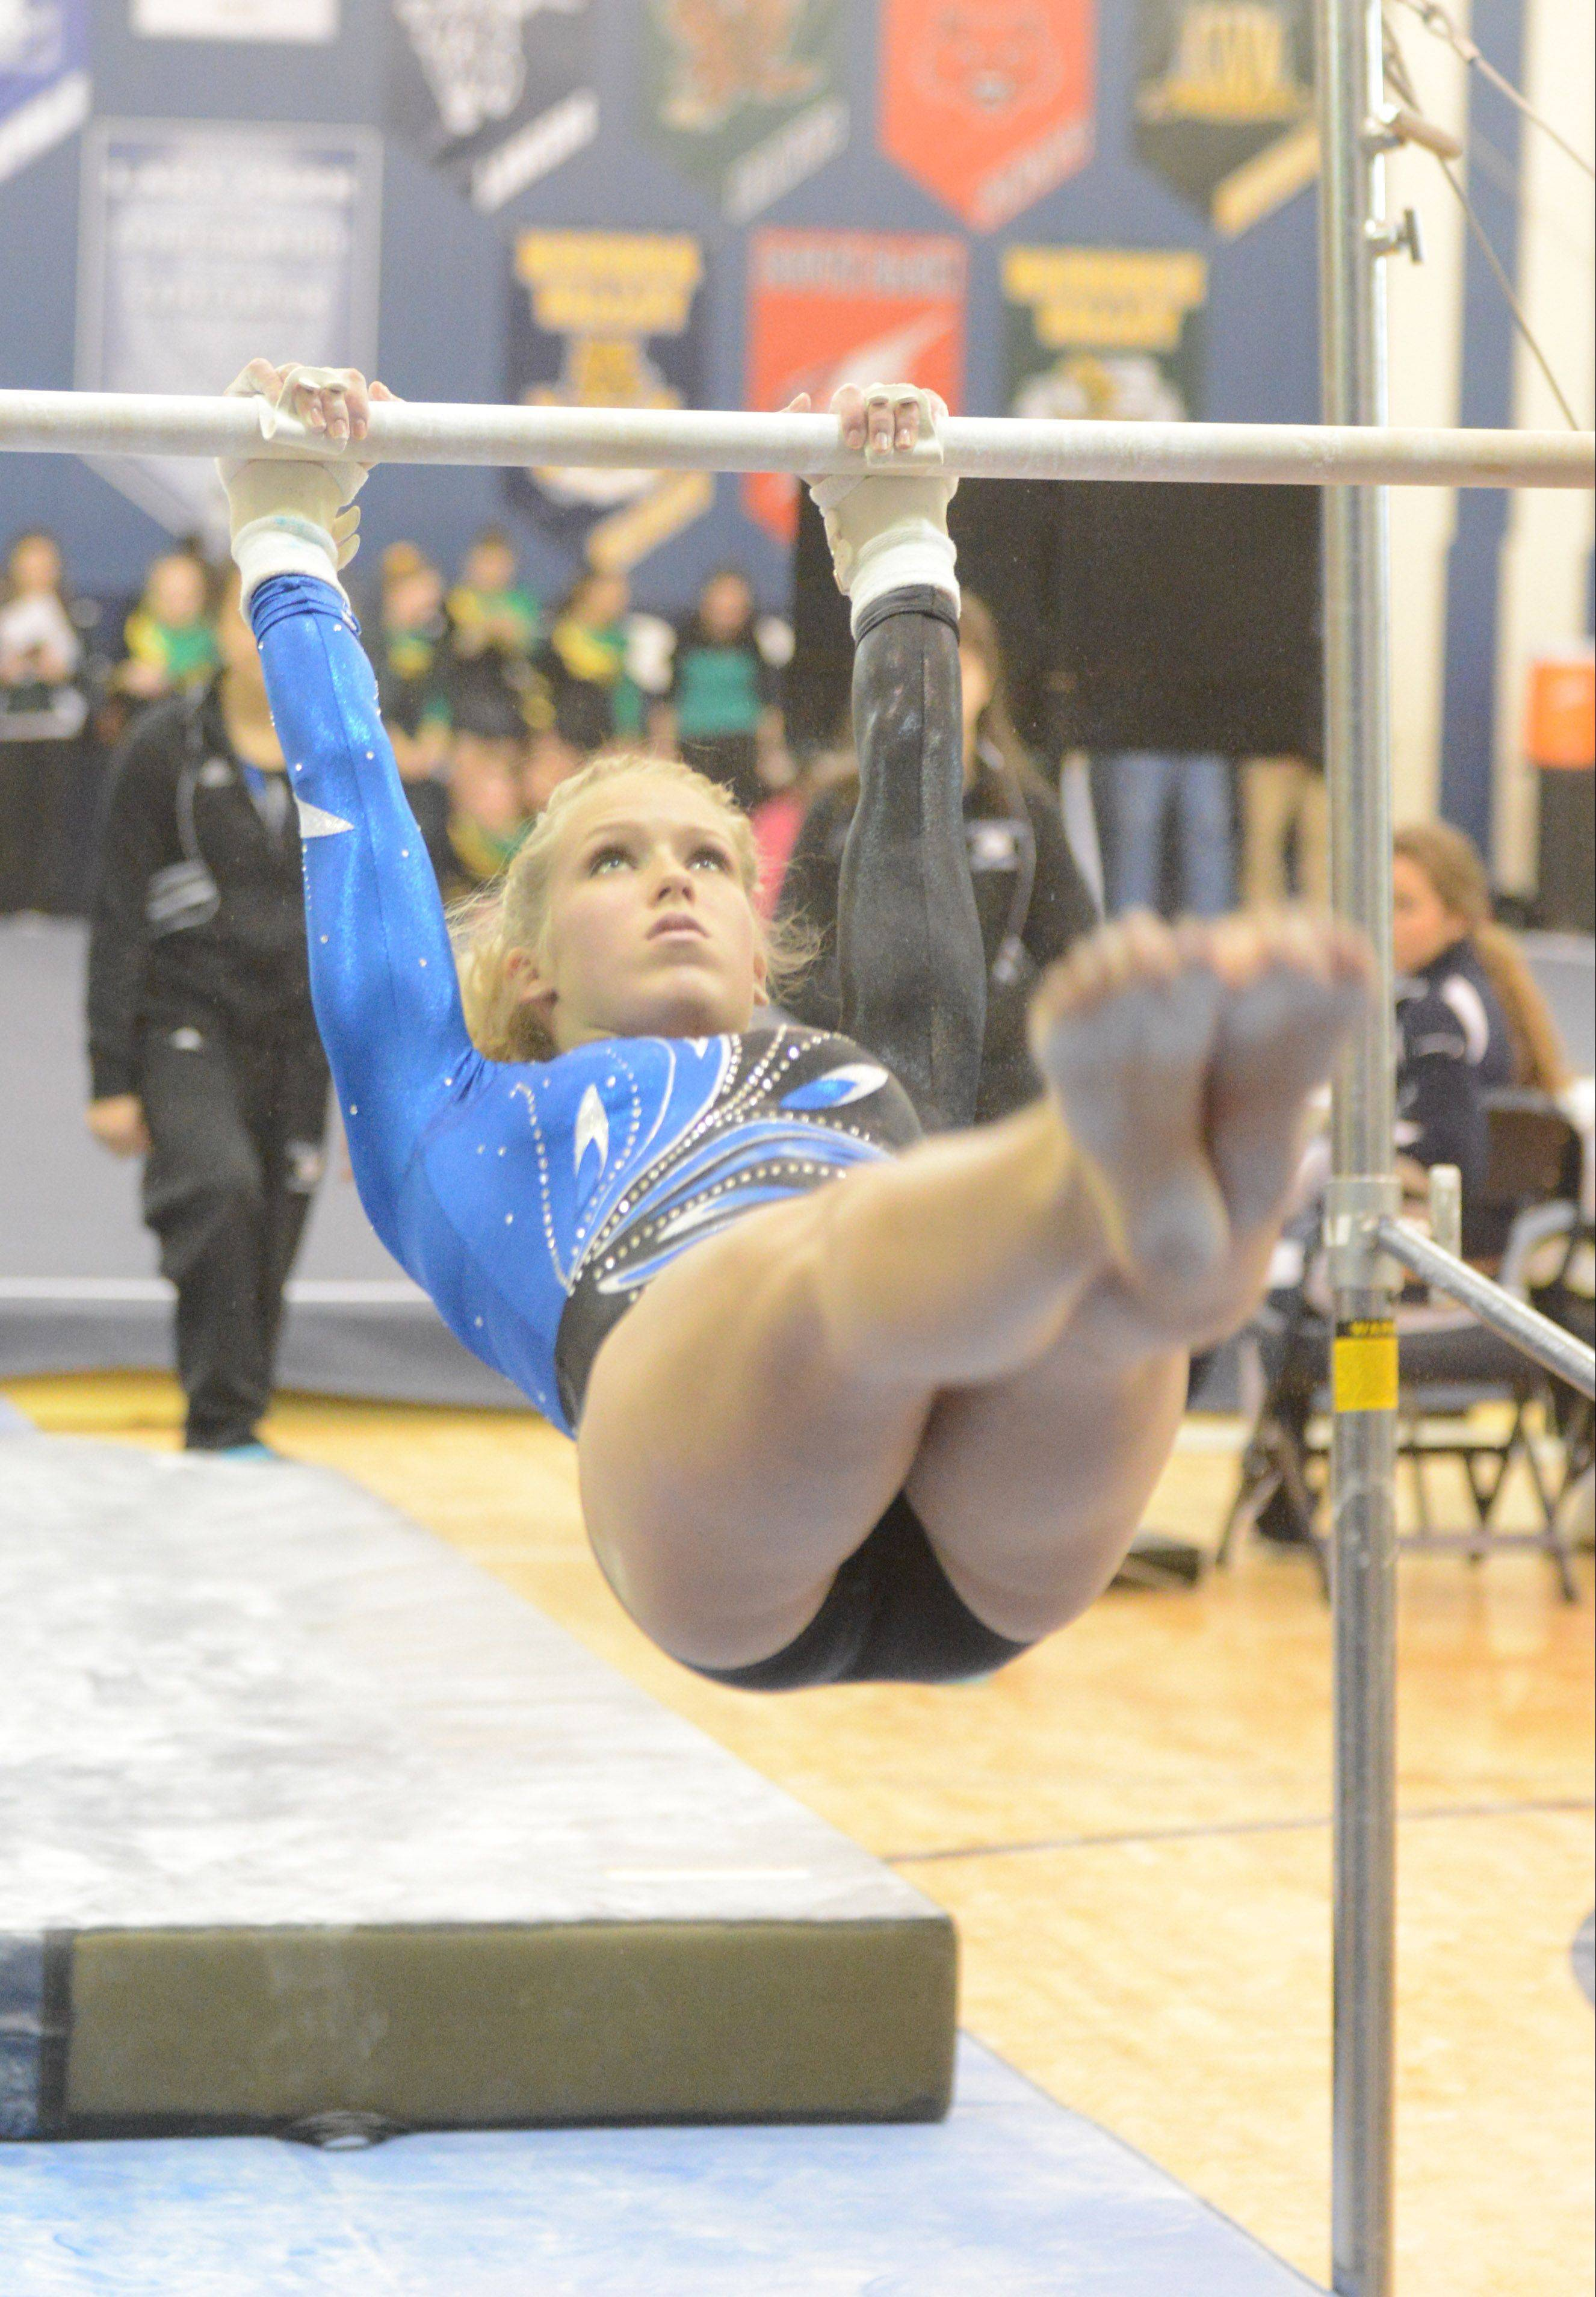 McKenna Merges, pictured last Saturday at the Upstate Eight gymnastics meet at Lake Park, helped Geneva win its regional Friday in dominating fashion.